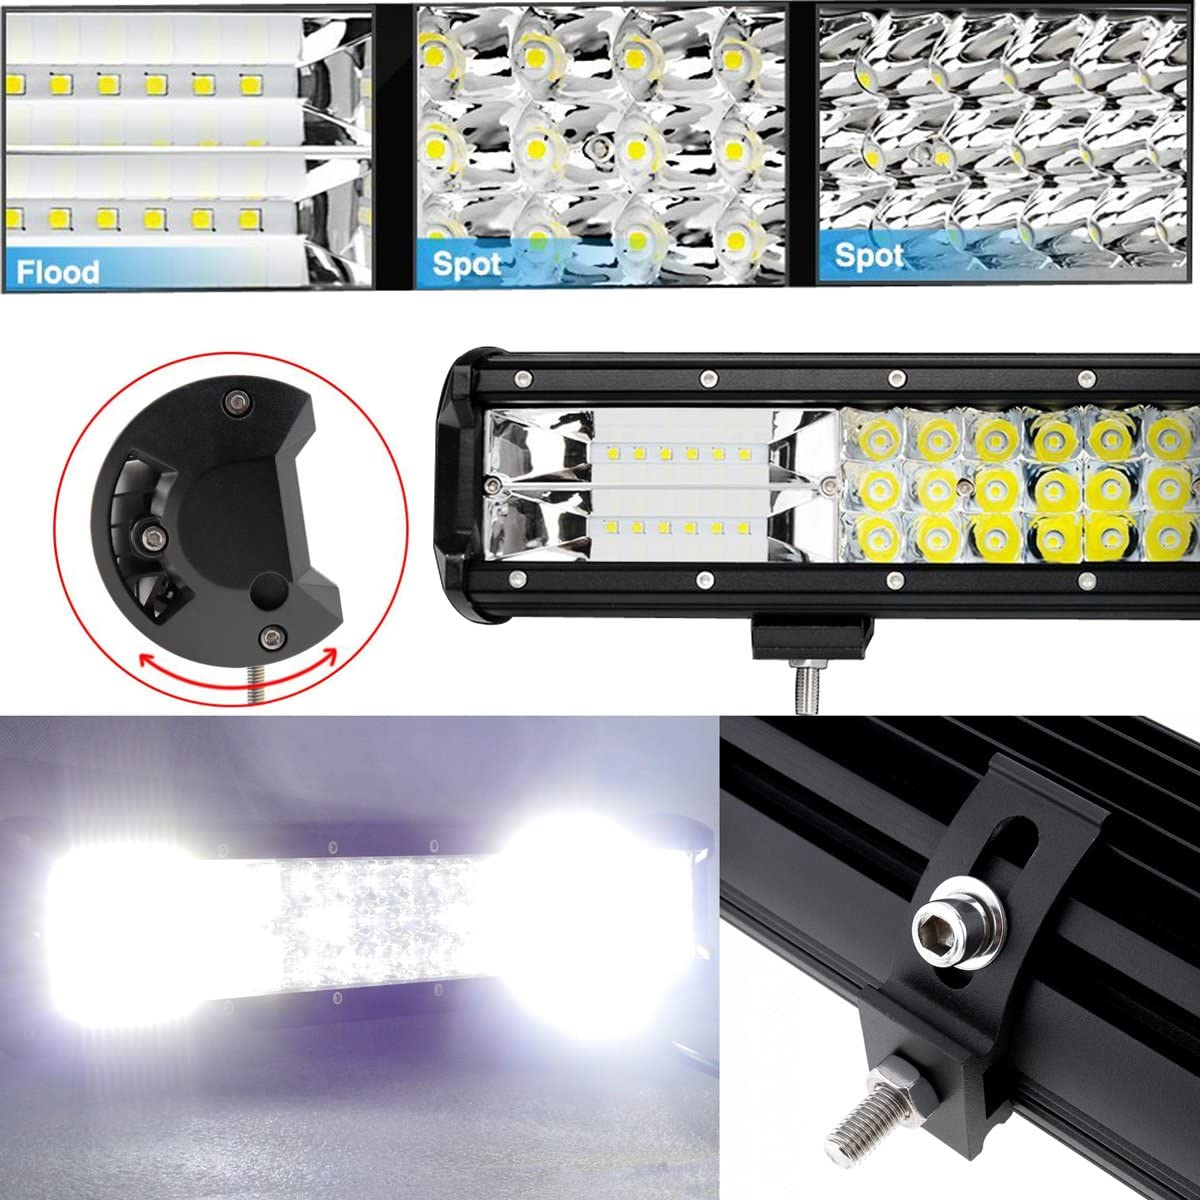 AUXTINGS 18 inch 252W LED Light Bar Triple Row Spot Flood Combo Beam Off Road Lights Waterproof Work Light with Wiring Harness for Trucks SUV ATV UTV Boat Lights